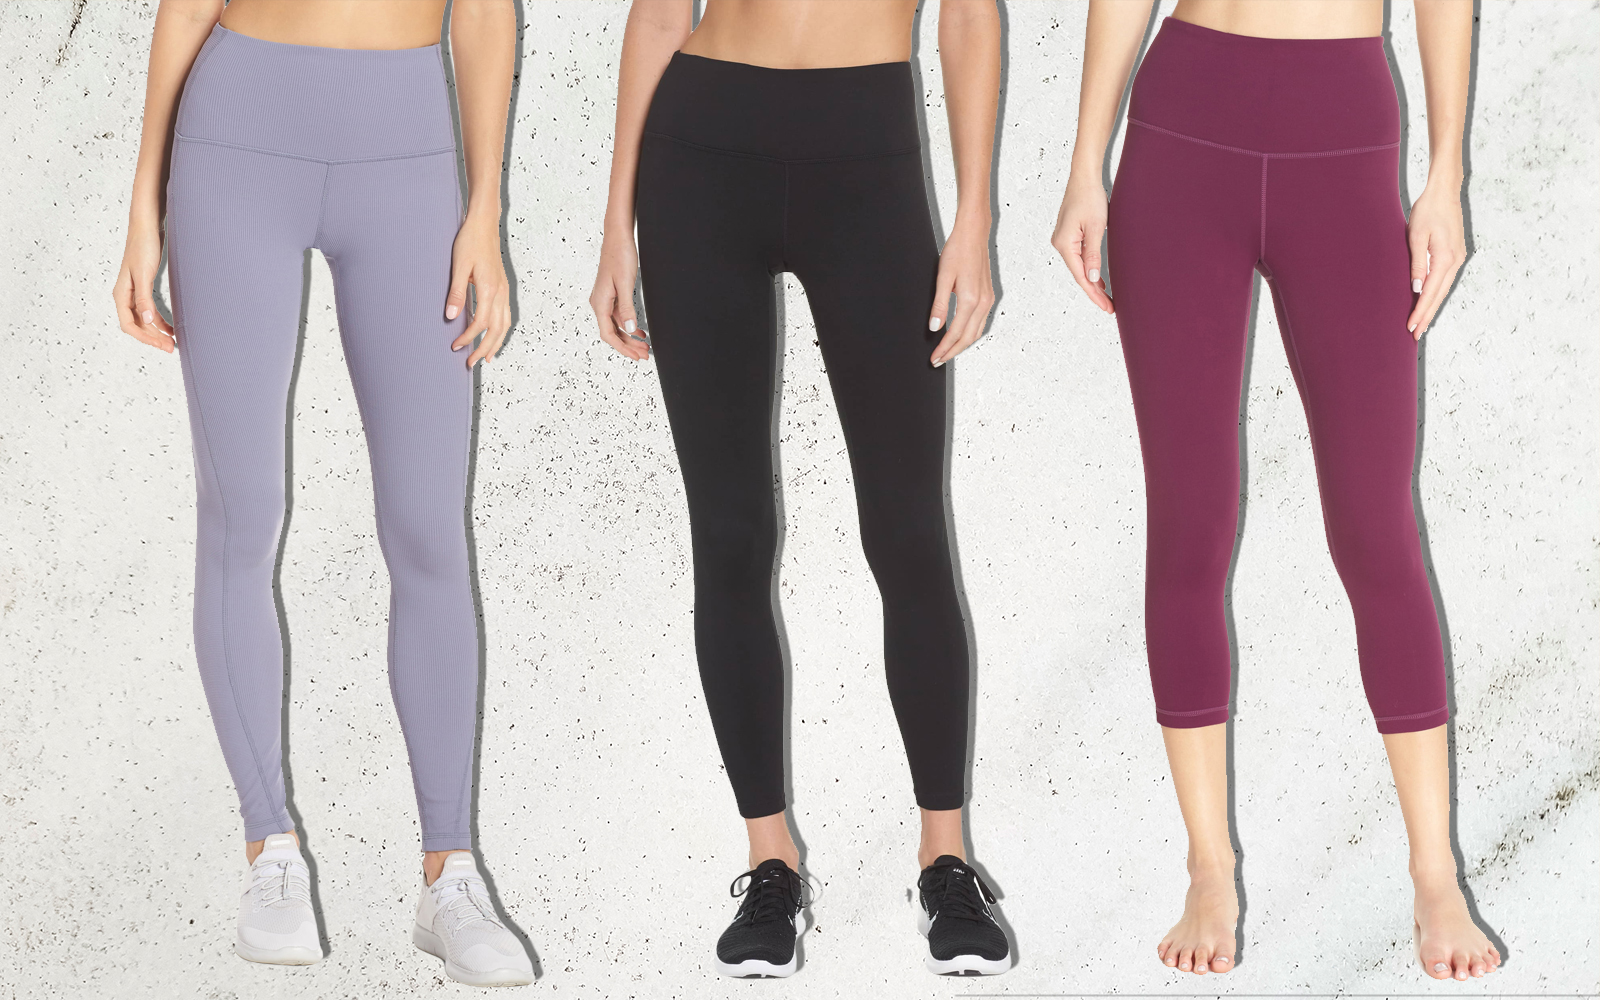 These Best-selling Leggings Are the Perfect Travel Pants — and They're $33 at Nordstrom Right Now